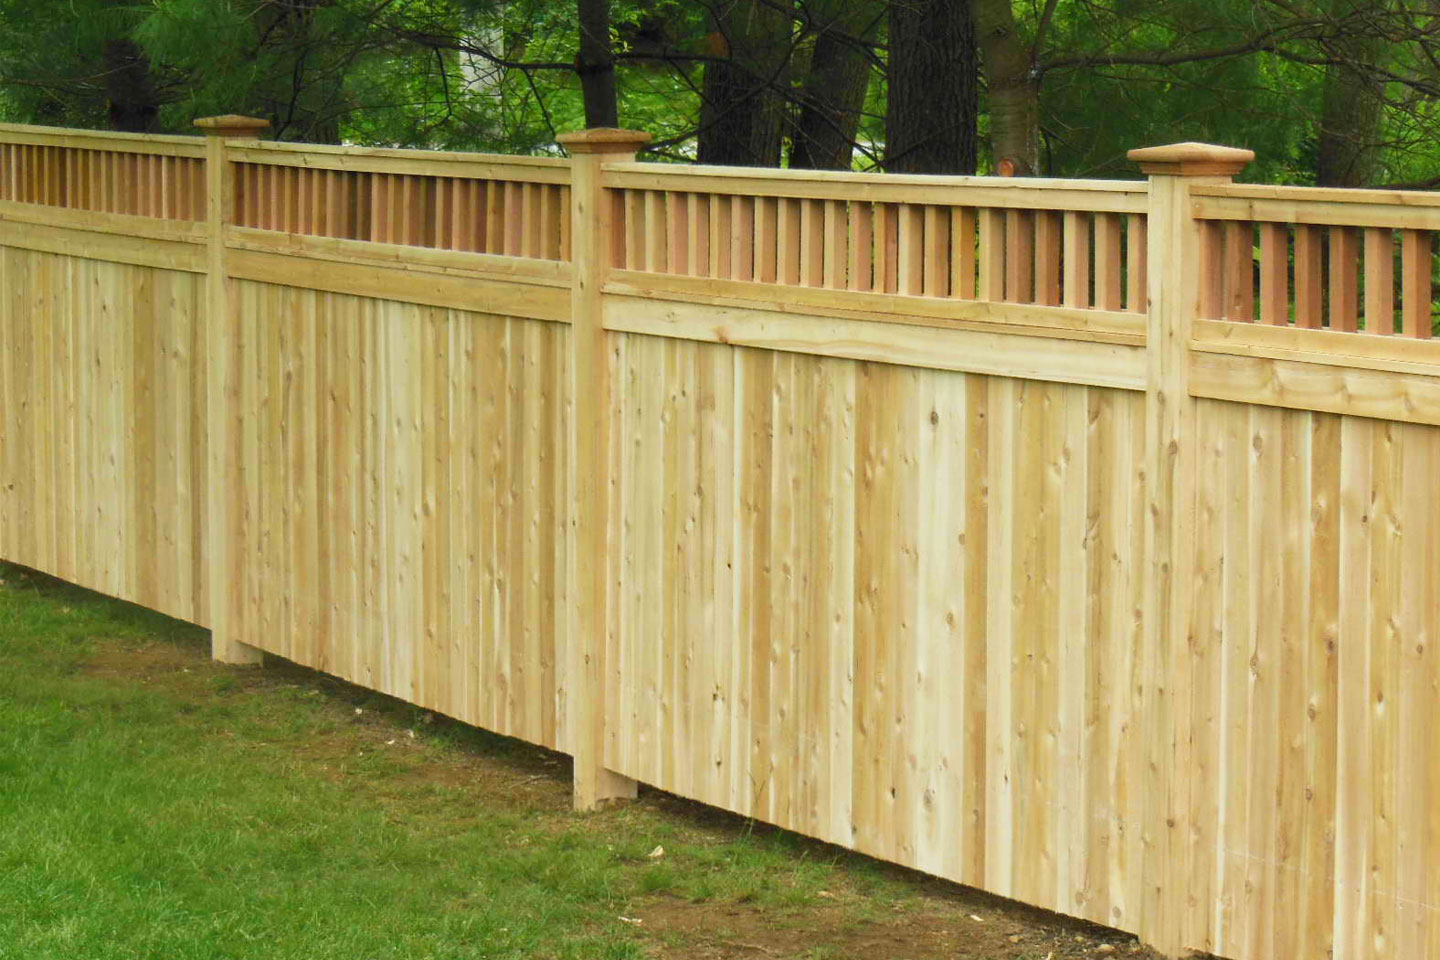 Privacy Fence Designs for Style & Seclusion | Freedonm ... on Decorations For Privacy Fence id=25209